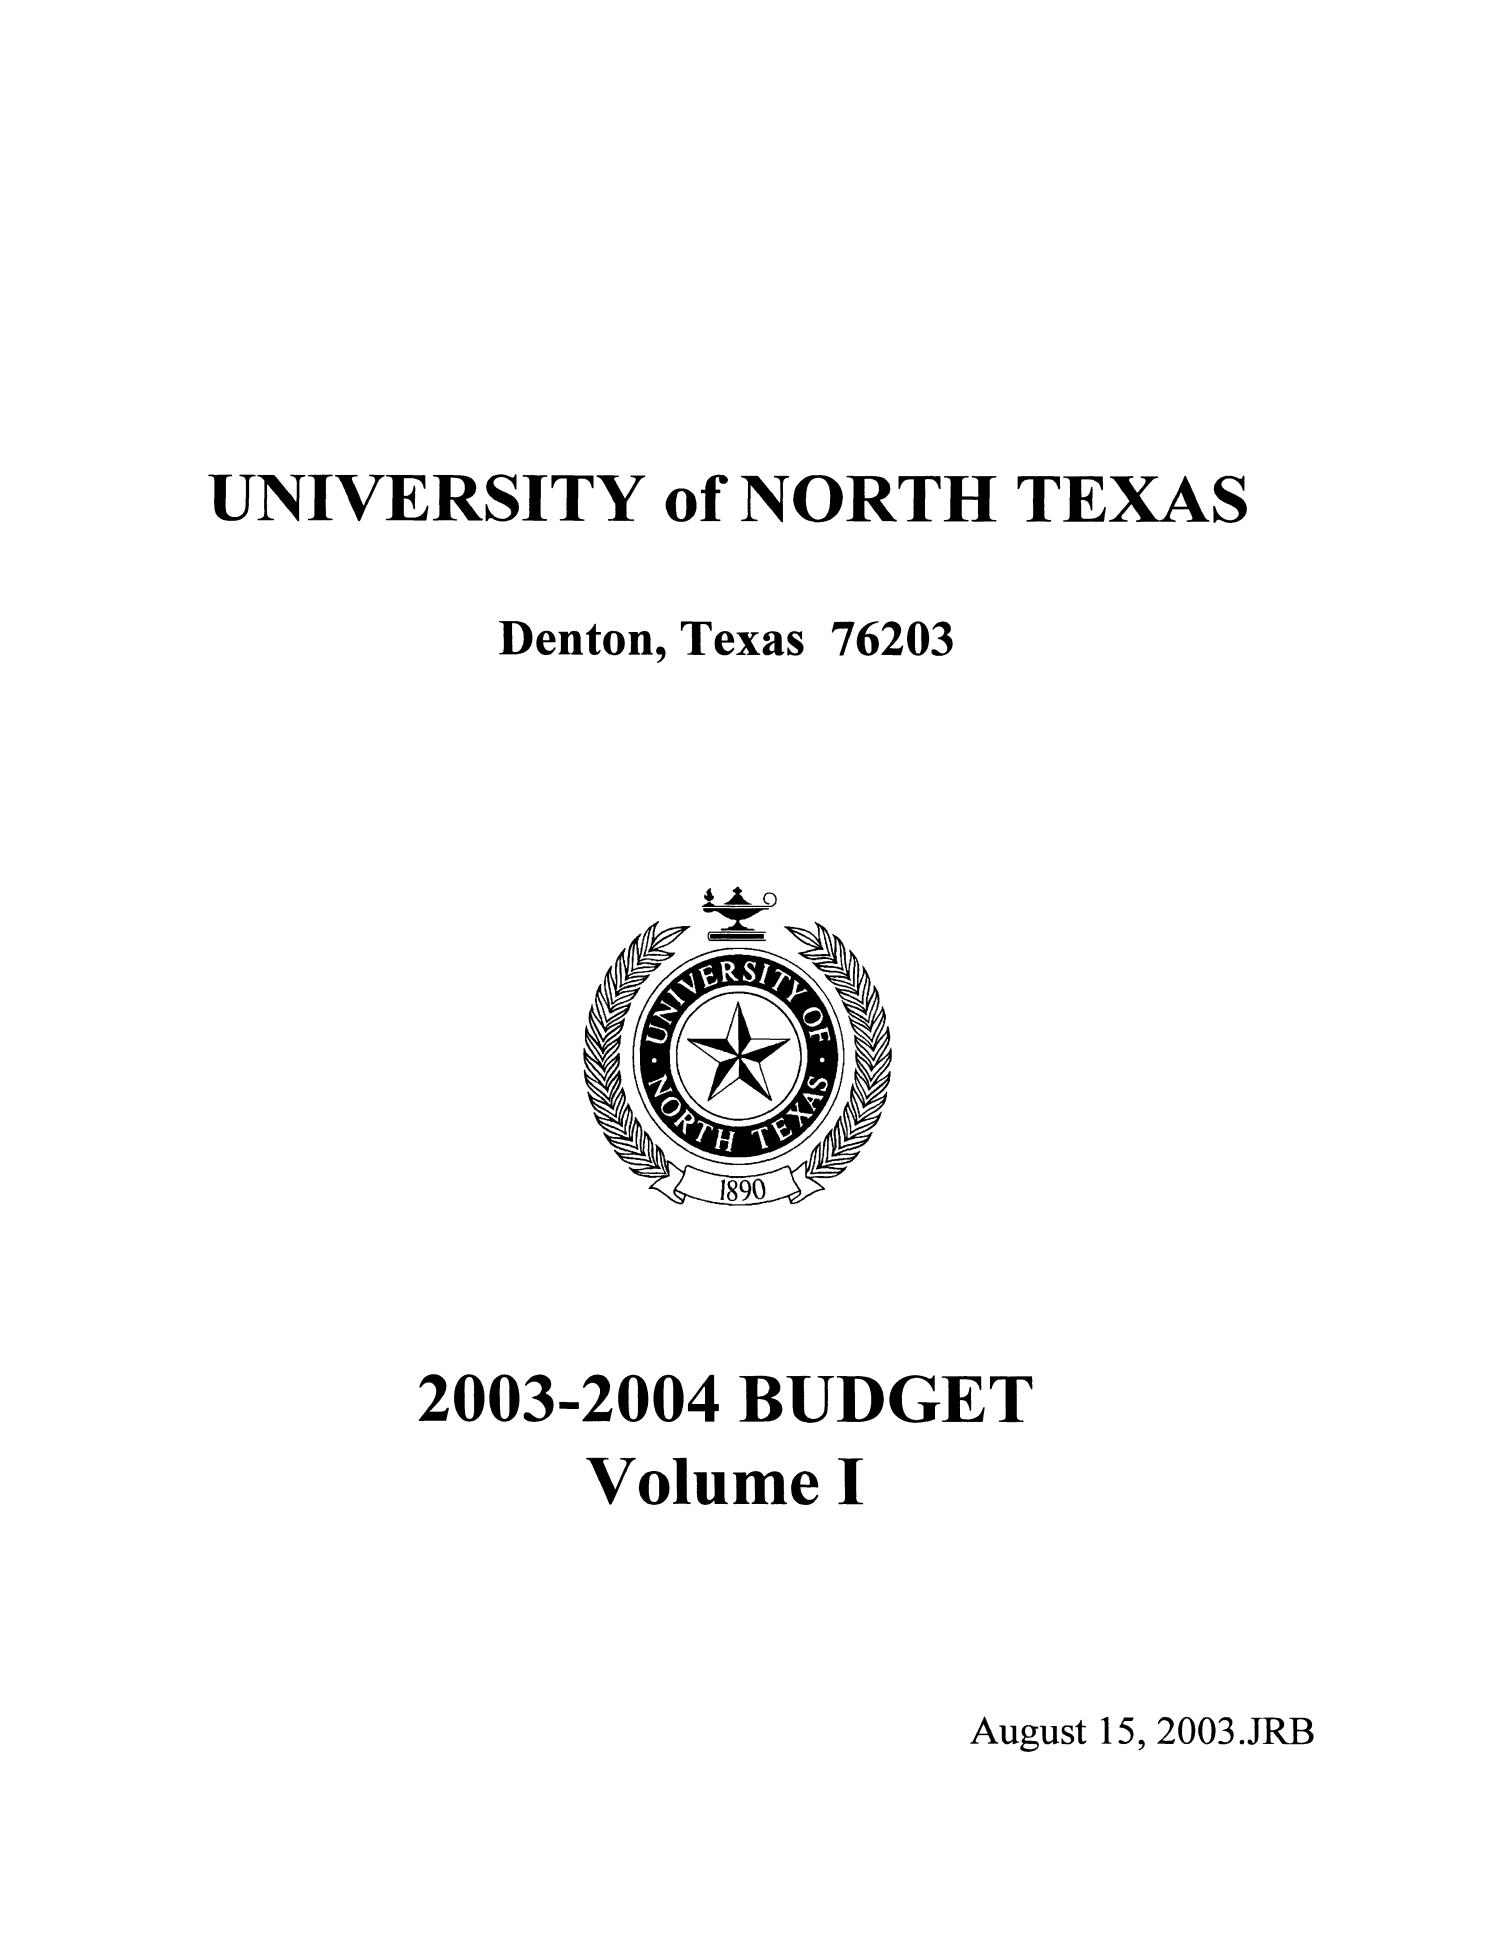 University of North Texas Budget: 2003-2004, Volume 1                                                                                                      Title Page